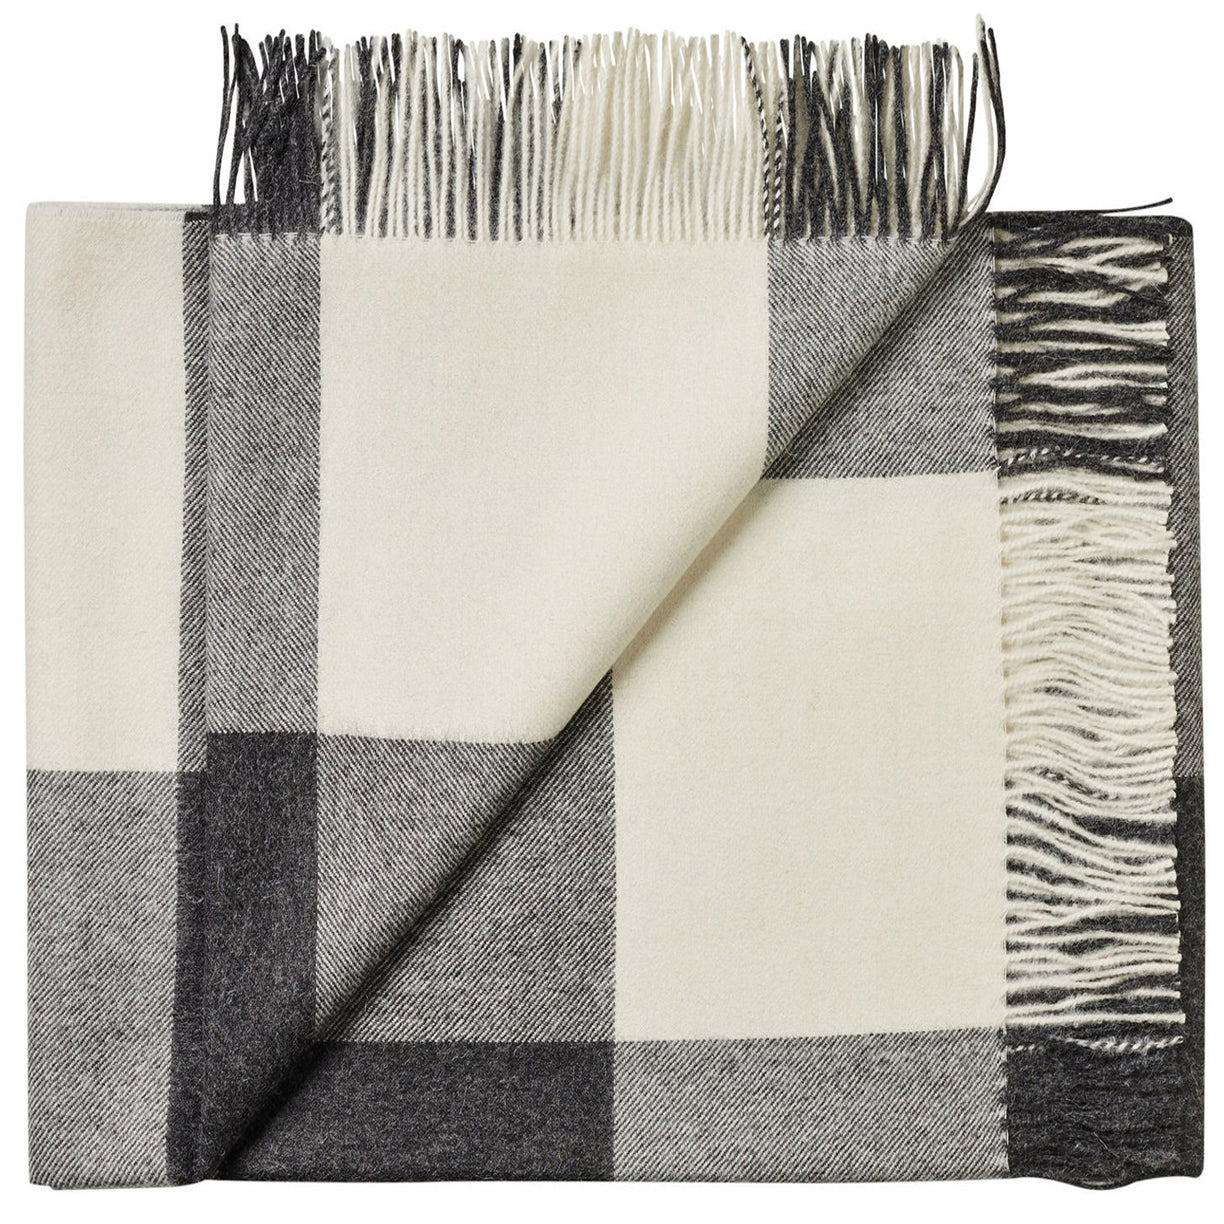 Soft Alpaca Wool Throw Blanket Black and White Plaid